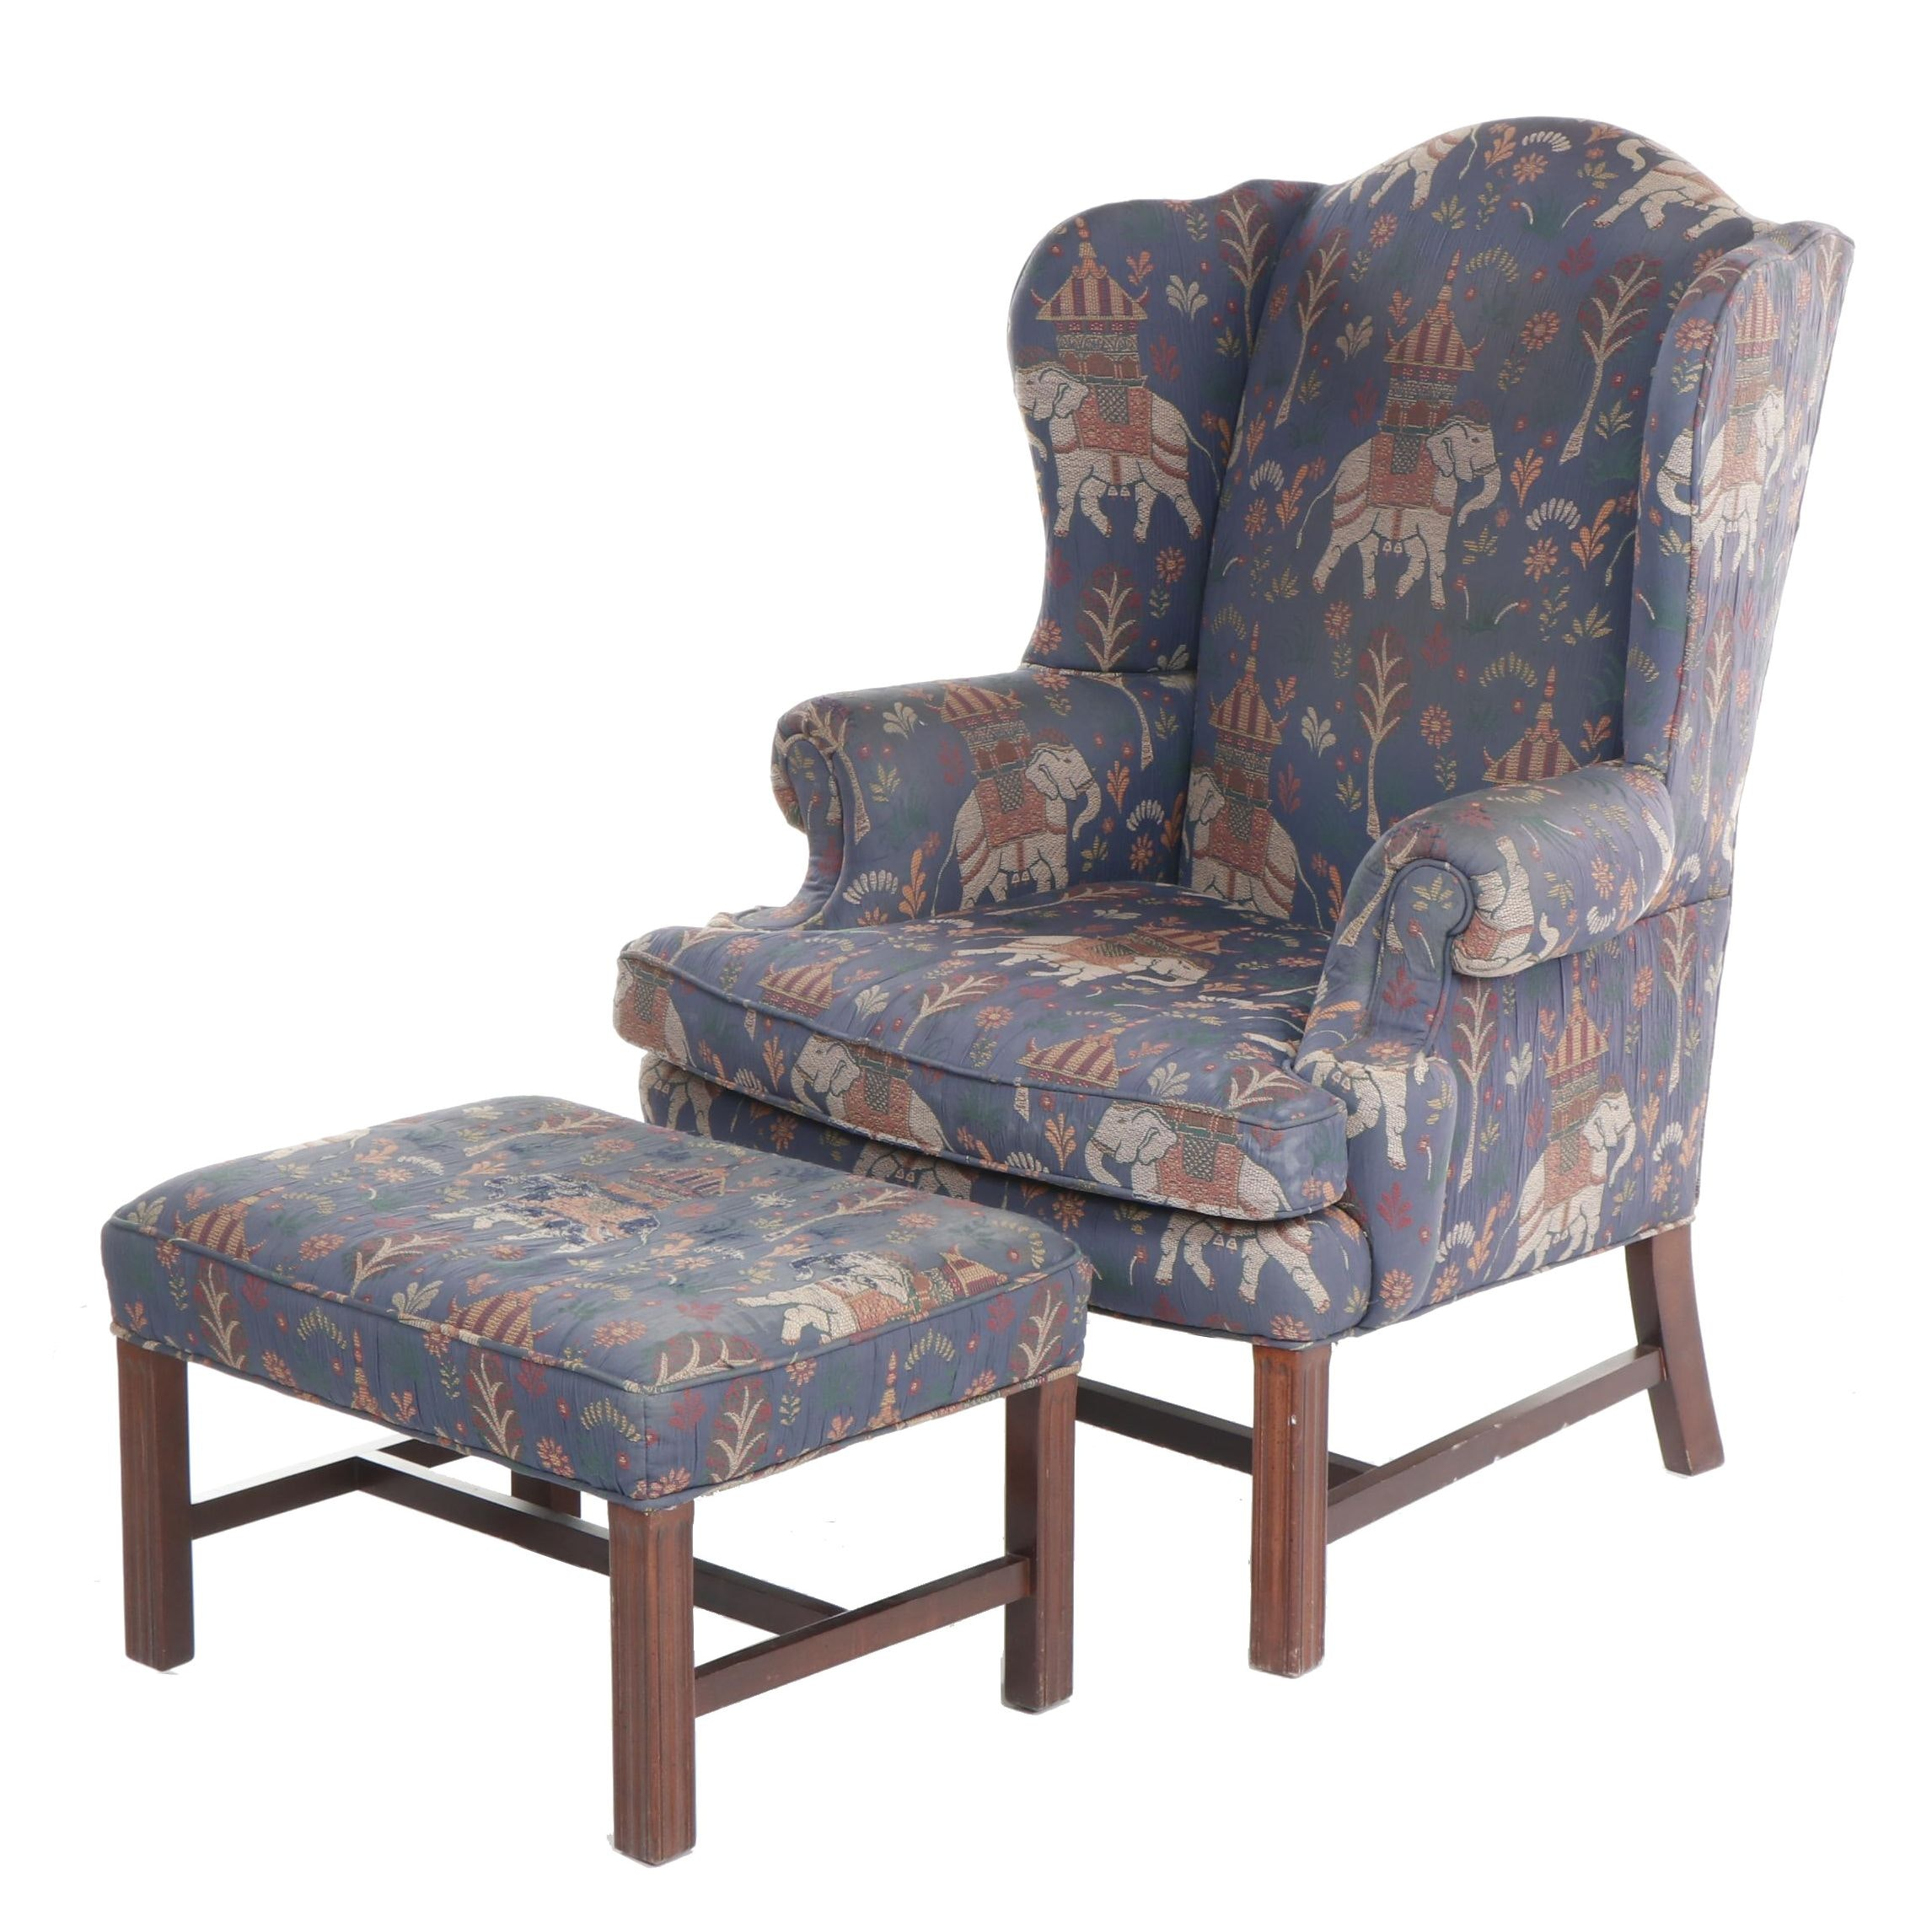 Sherrill Furniture Upholstered Wingback Armchair with Elephant Motif